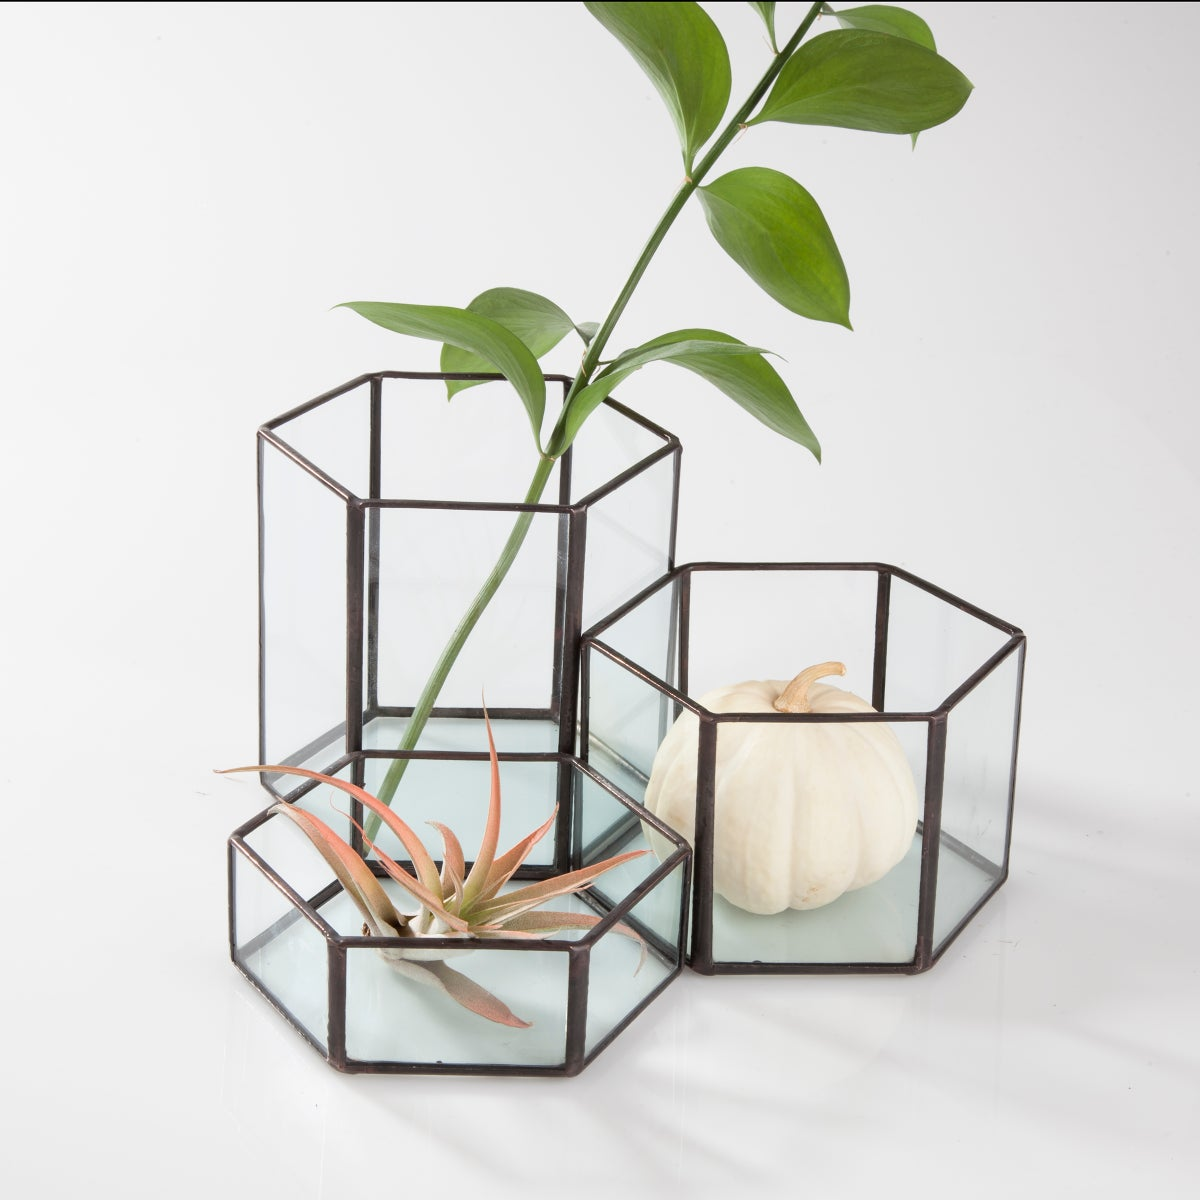 Image of Modular Hexagon Terrariums